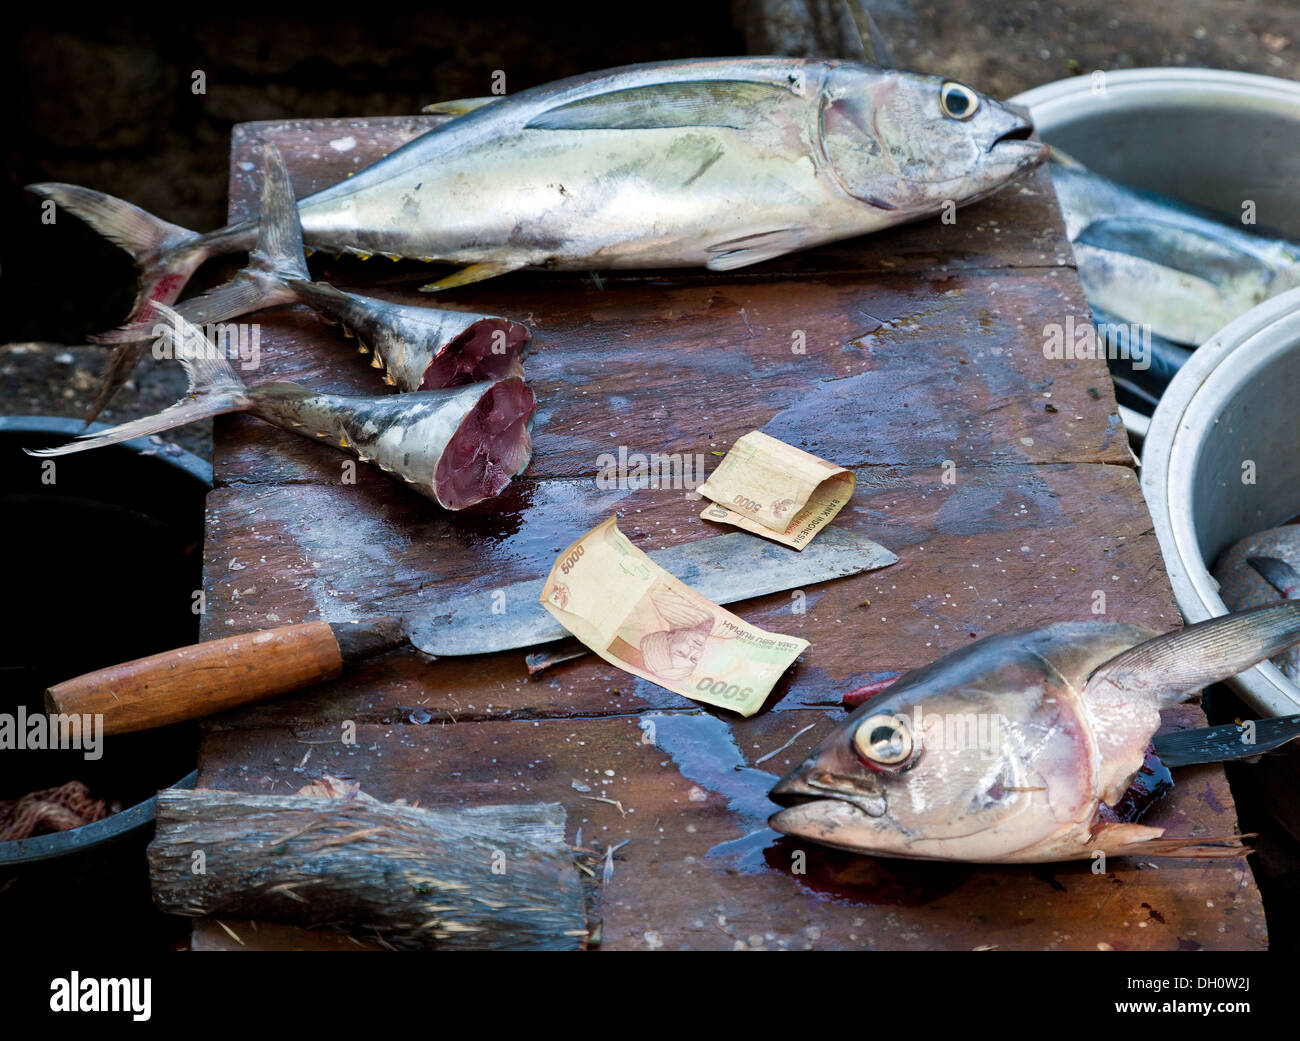 Money, knives and fish at the market in Amlapura, formerly Karangasem, East Bali, Bali, Indonesia, Southeast Asia, Asia - Stock Image